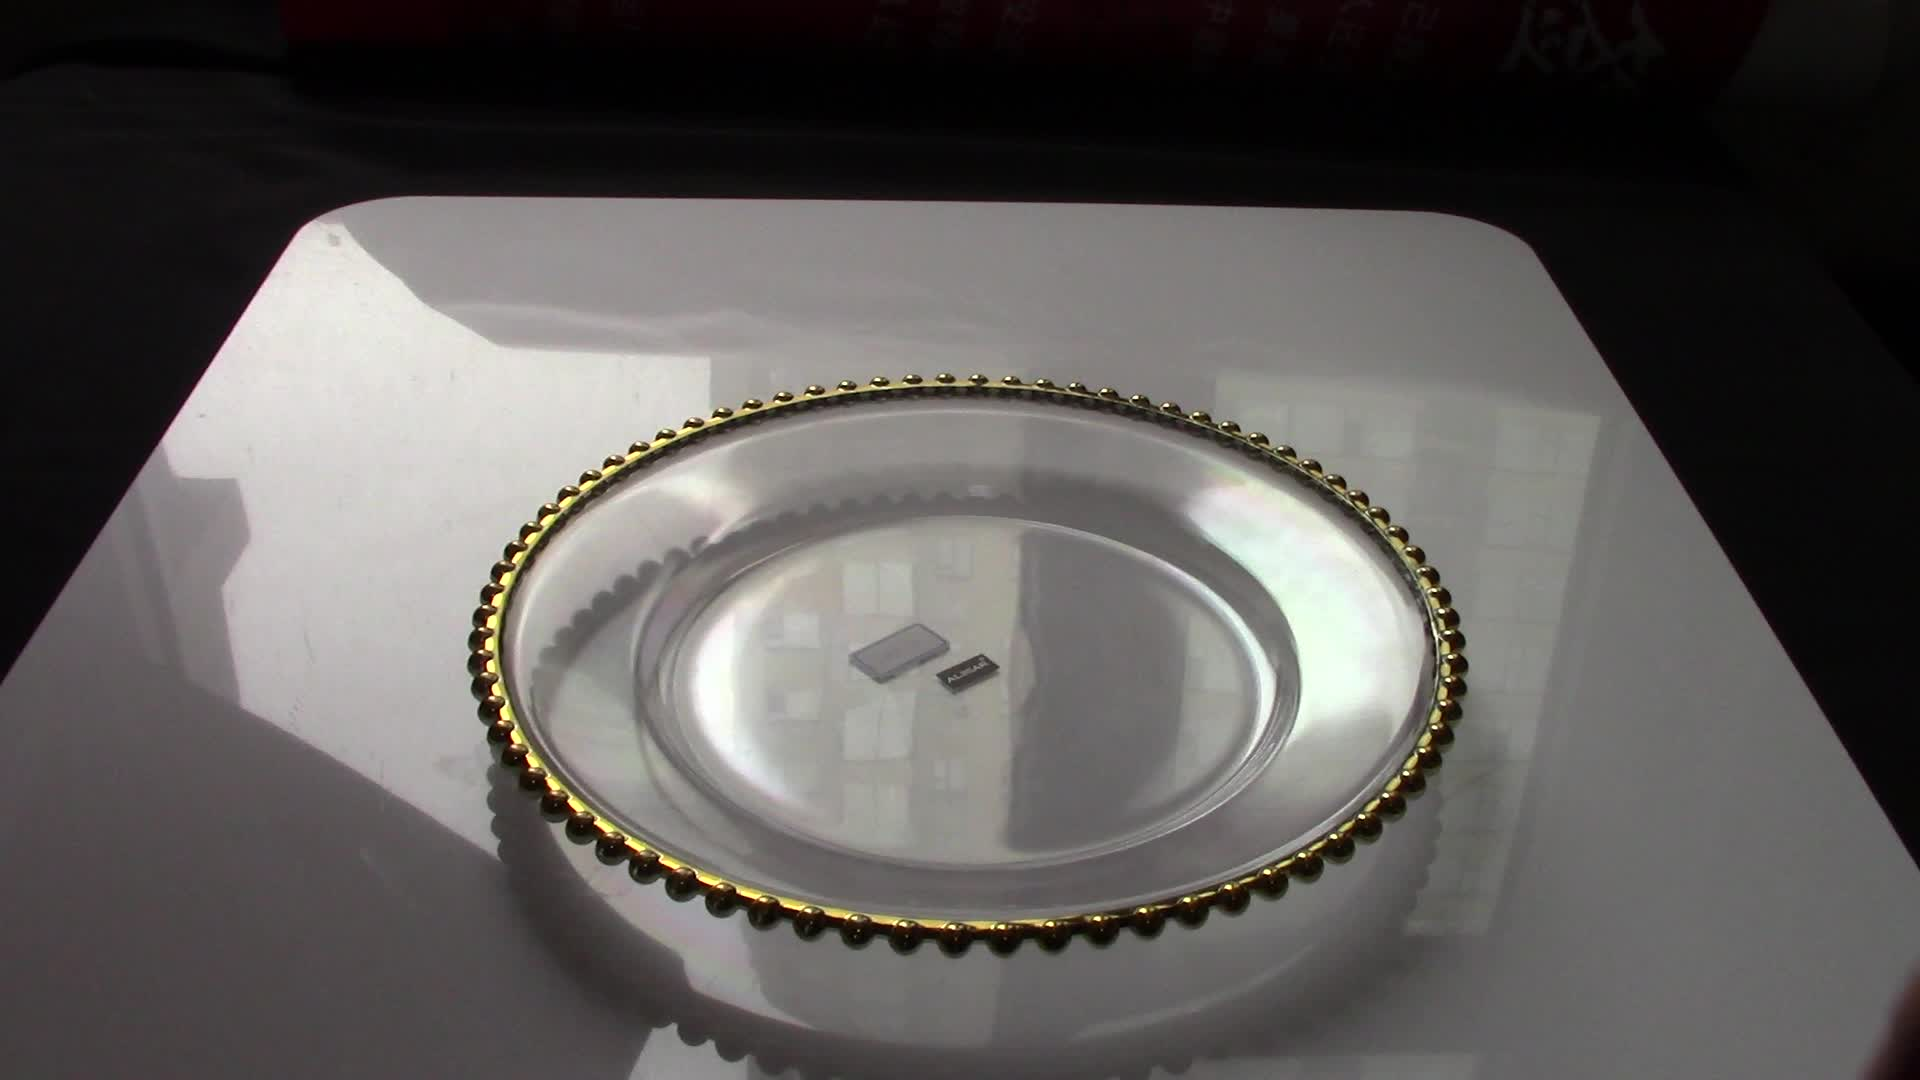 ALiiSAR Amazon disposable clear plastic charger plates with gold beads